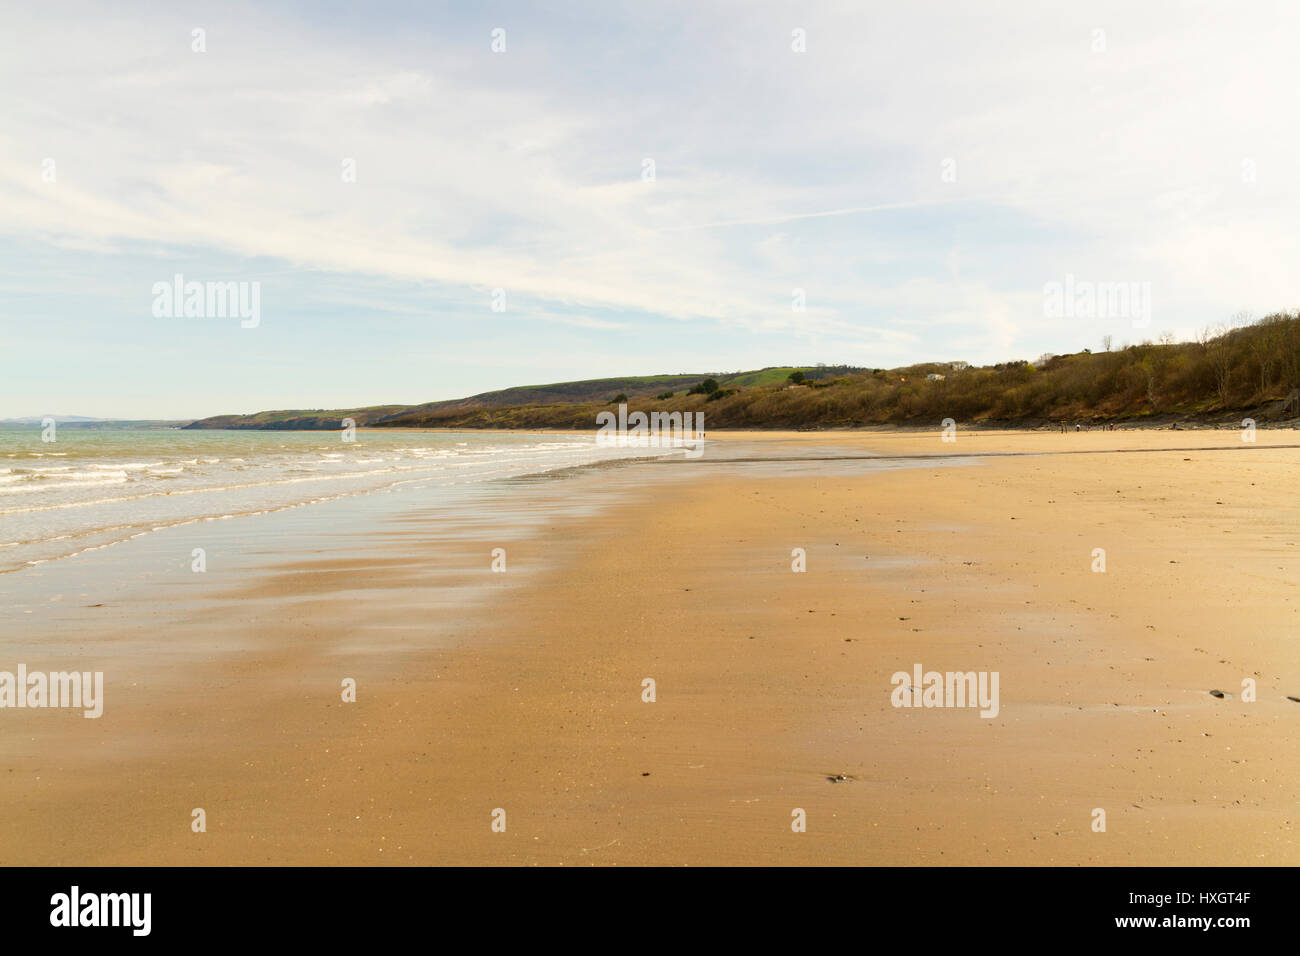 The sandy long empty beach in New Quay Wales - Stock Image